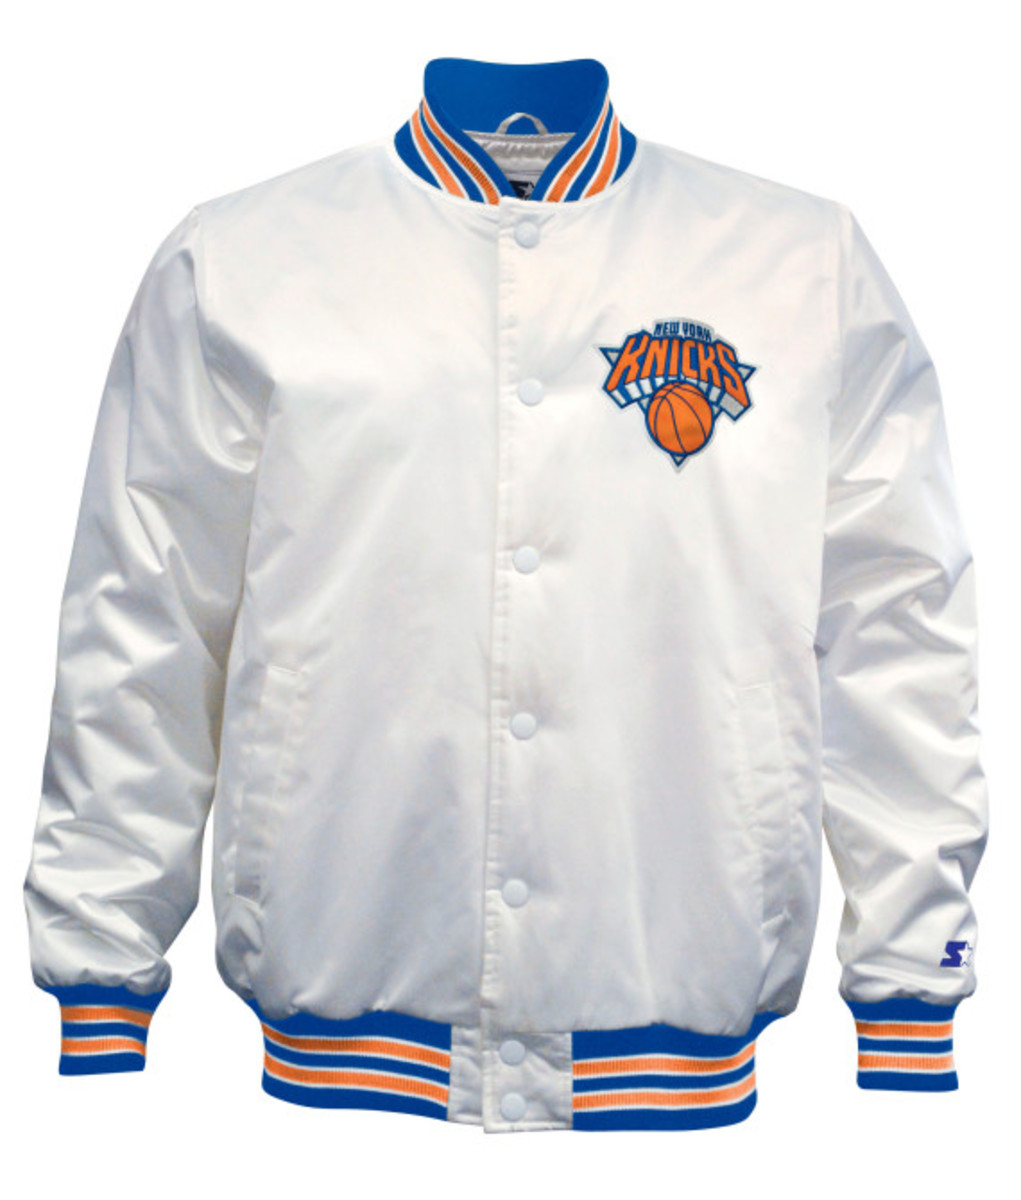 Starter – Apr 12, 2016 & Brooklyn Nets Limited Edition Satin Jacket in Christmas White - 1